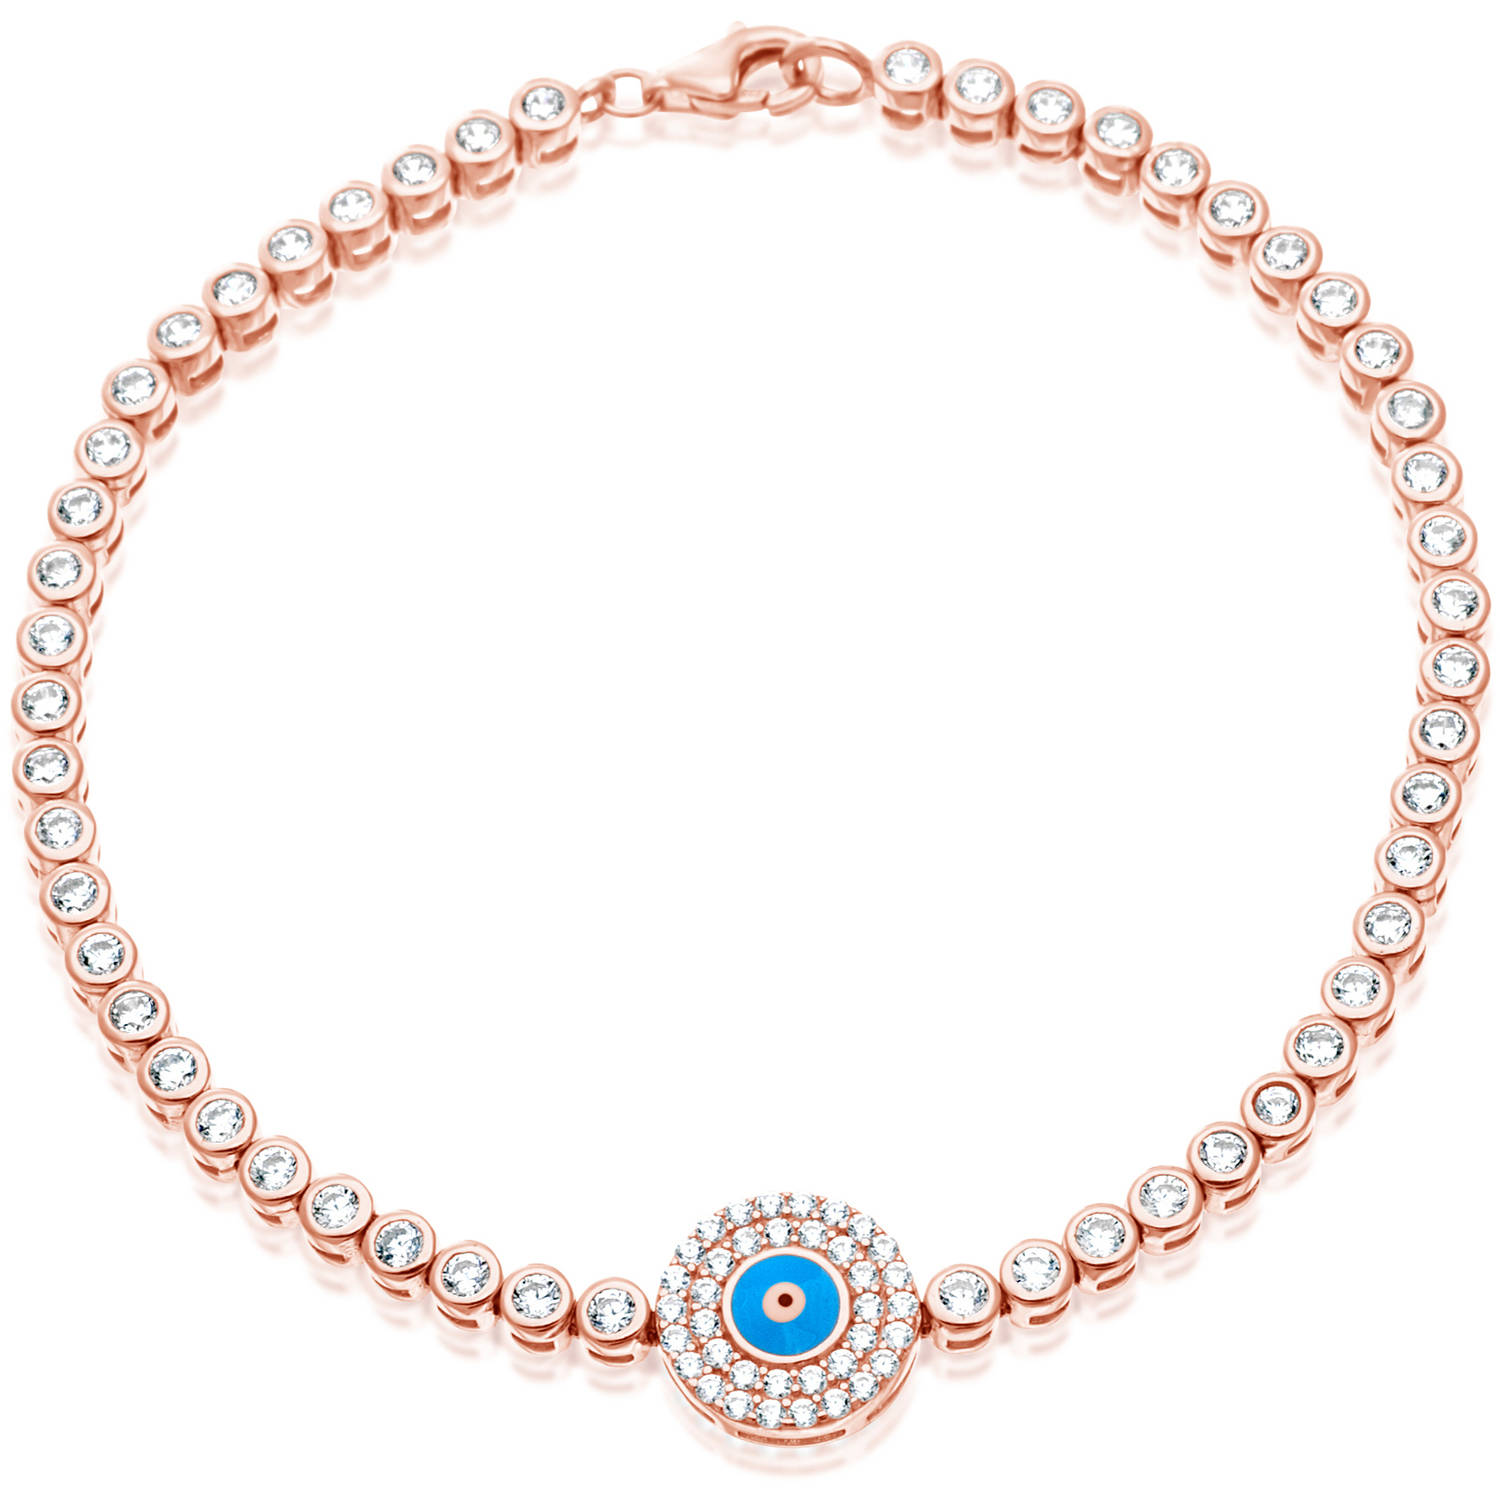 Rose Gold over Sterling Silver Evil Eye Cubic Zirconia Tennis Bracelet, 7.5""